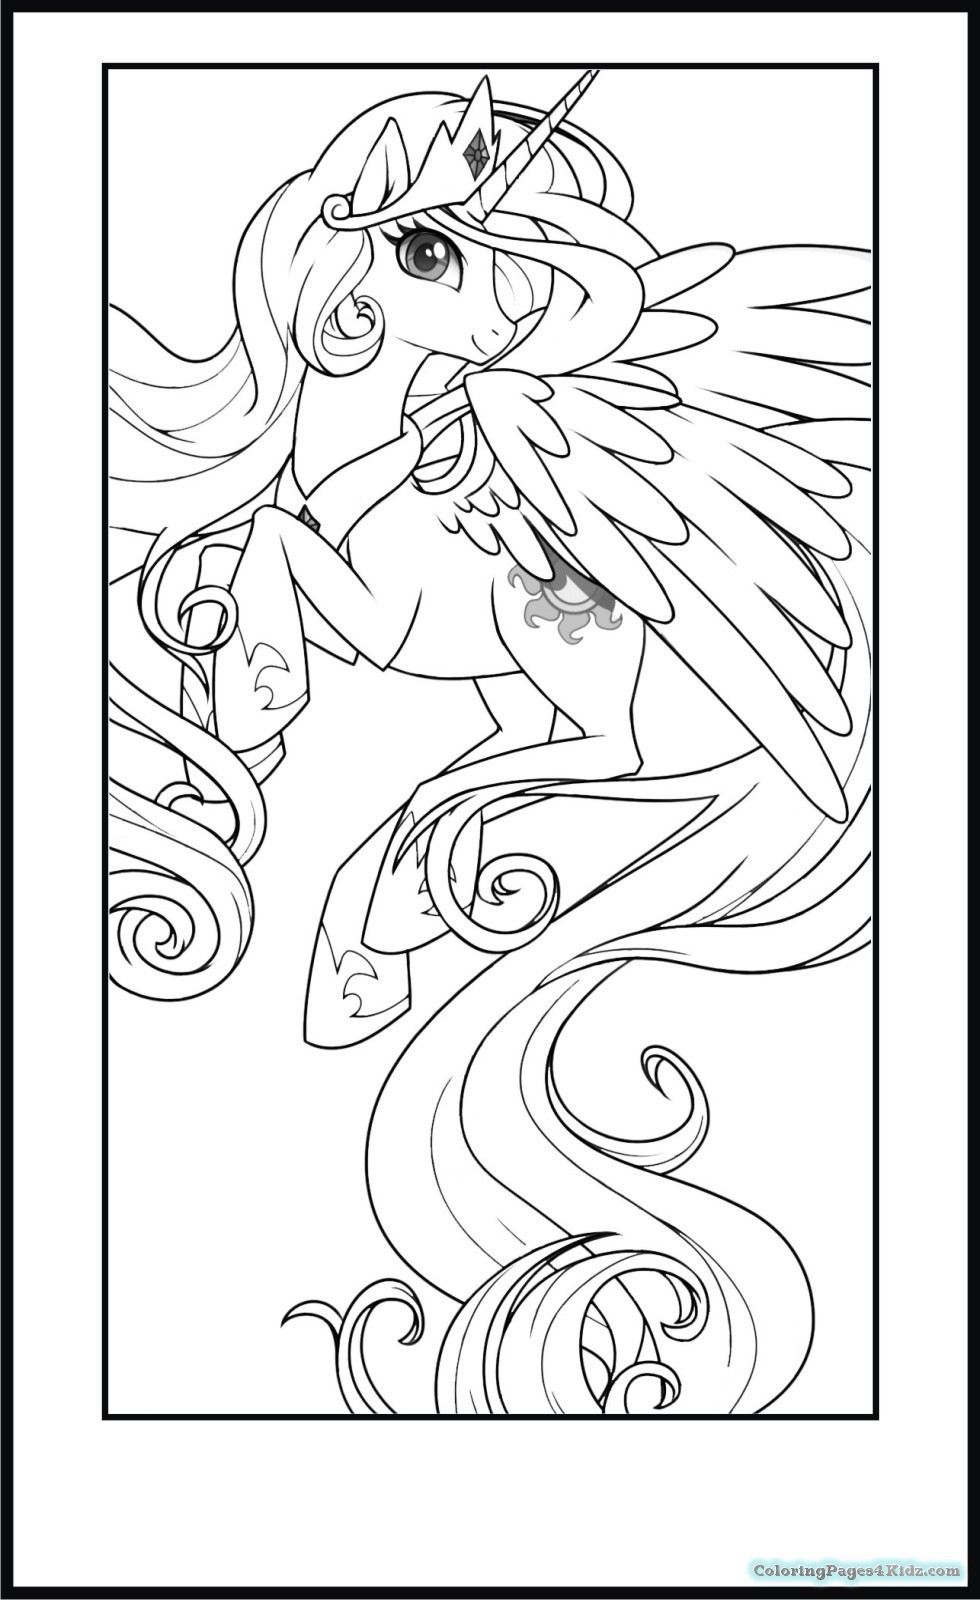 980x1600 My Little Pony Princess Celestia Coloring Pages To Print